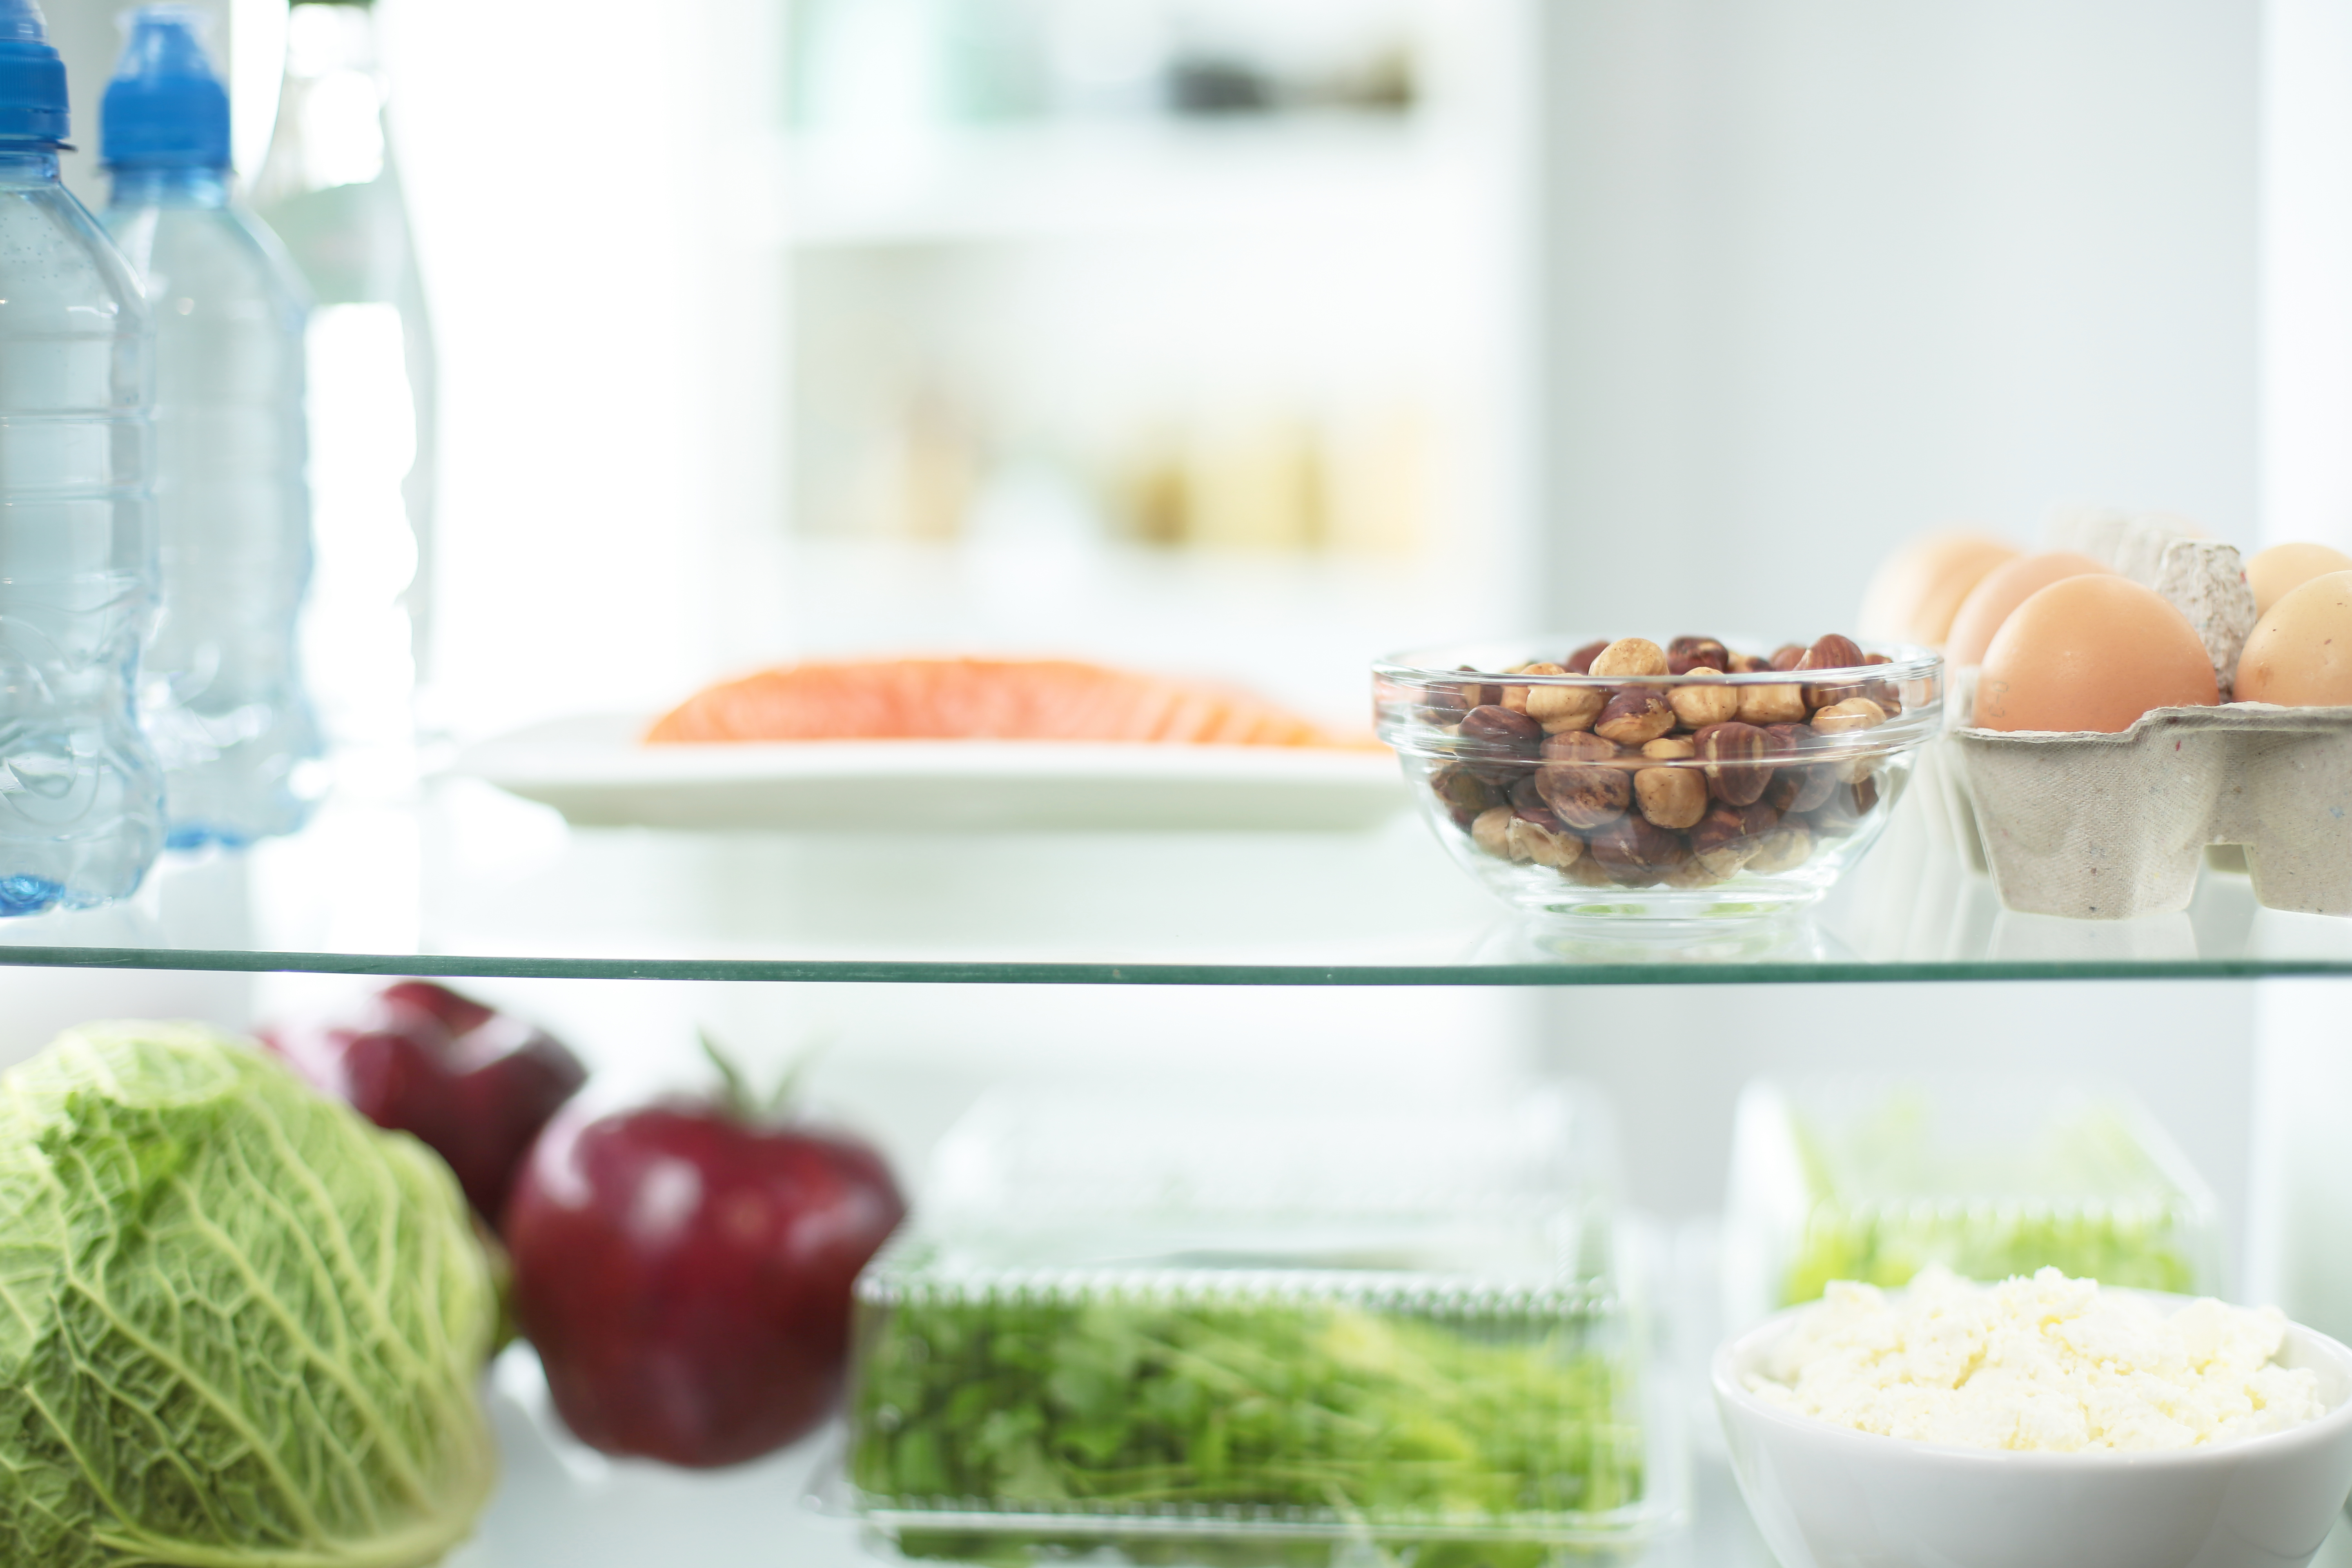 Open fridge full of fresh fruits and vegetables, healthy food background, organic nutrition, health care, dieting concept.